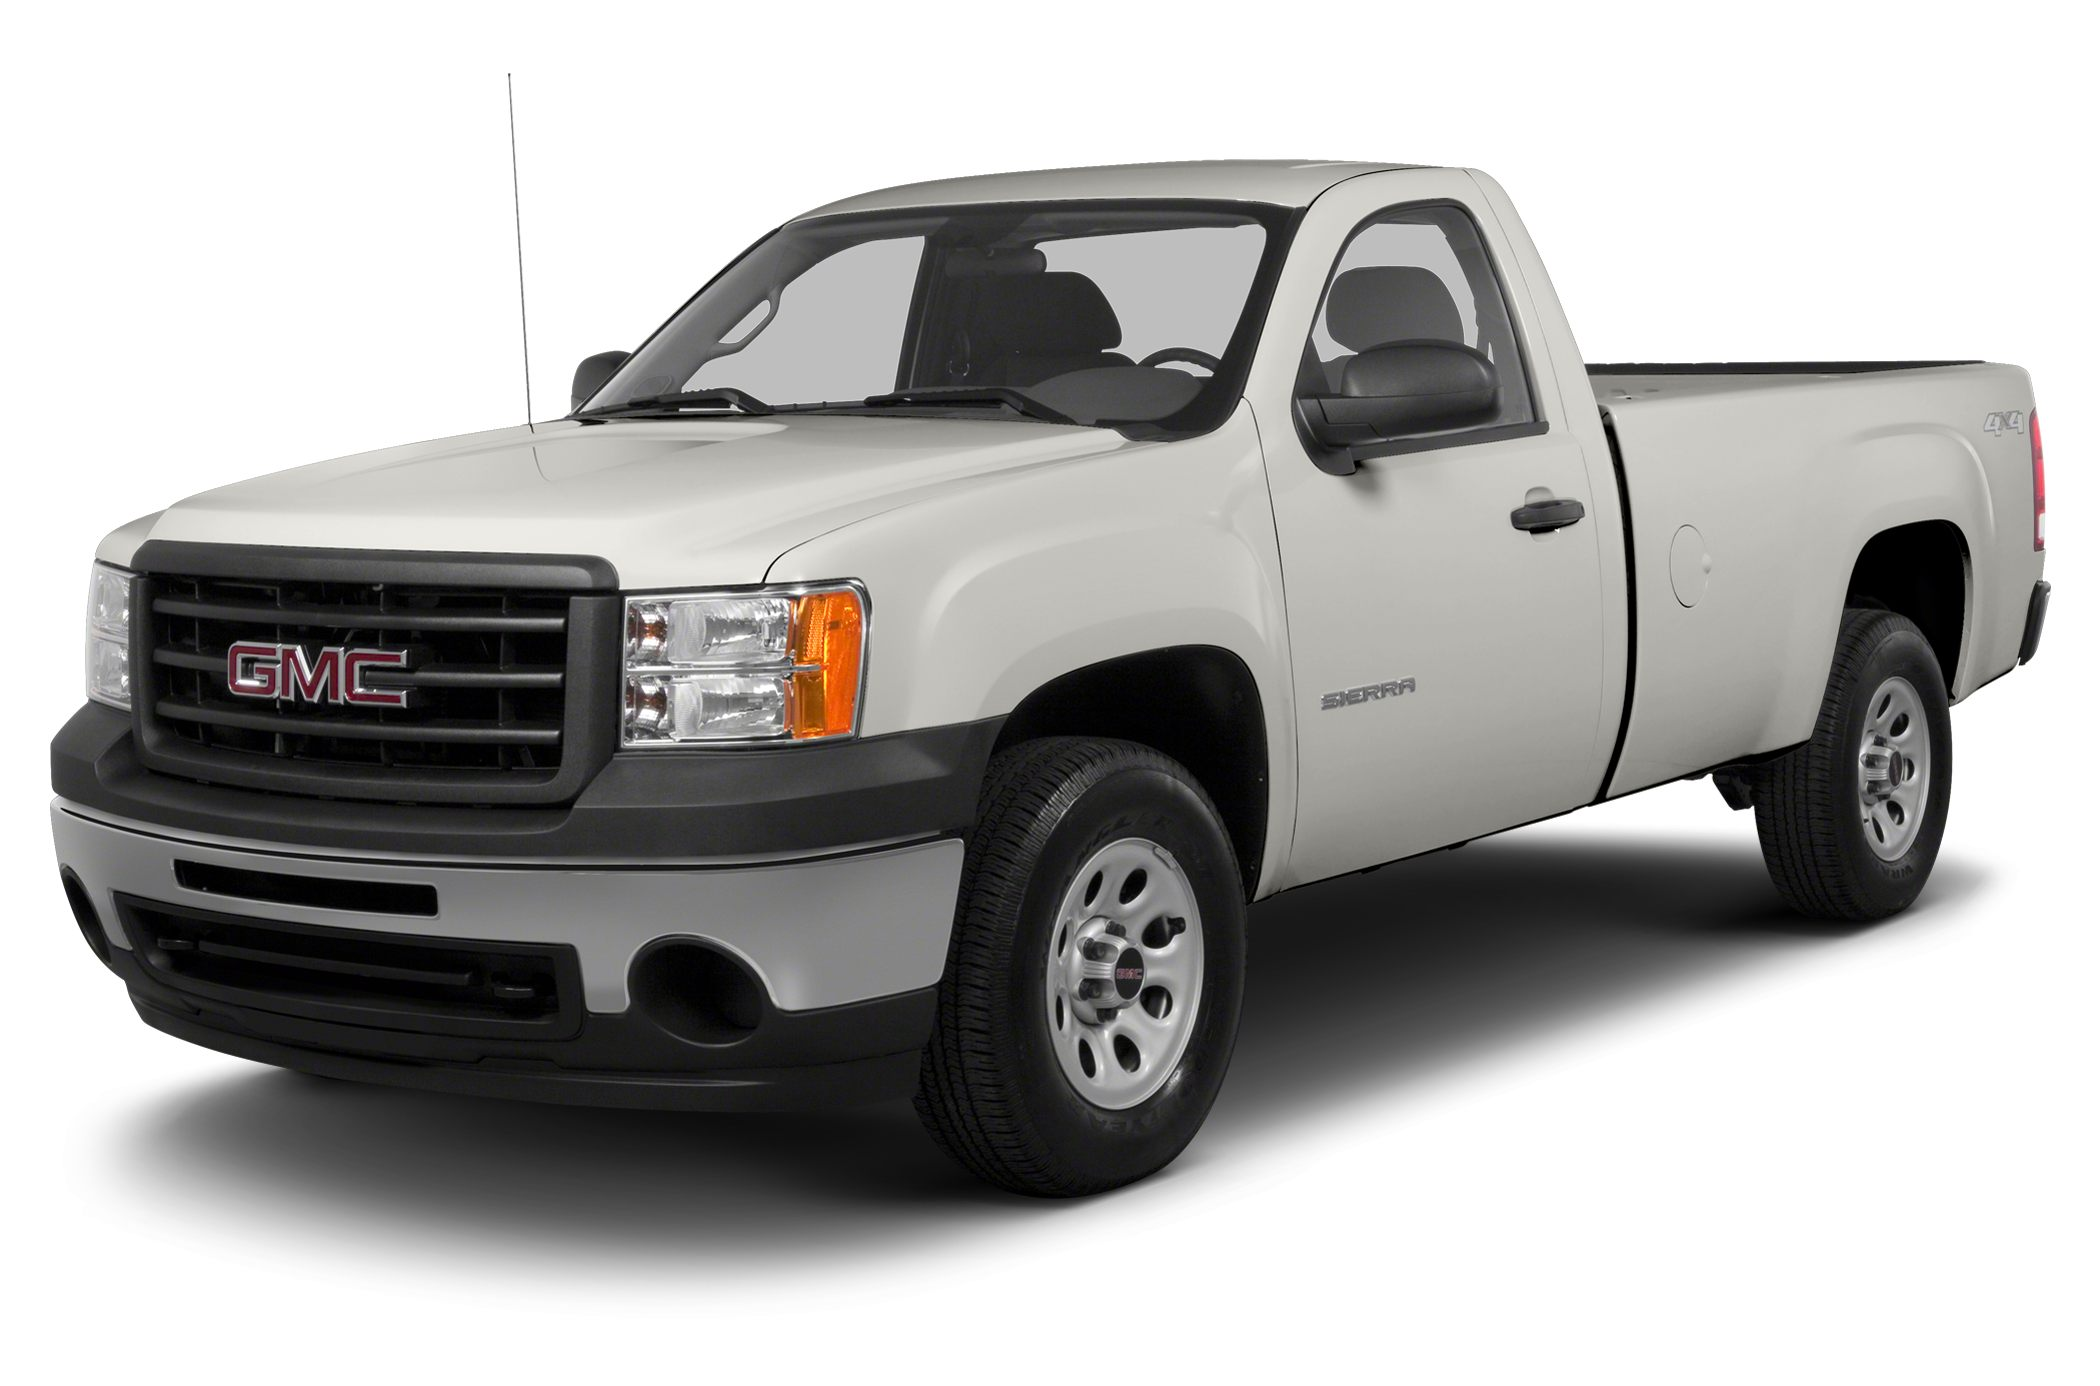 2013 GMC Sierra 1500 SLE1 Crew Cab Pickup for sale in San Angelo for $34,998 with 33,266 miles.